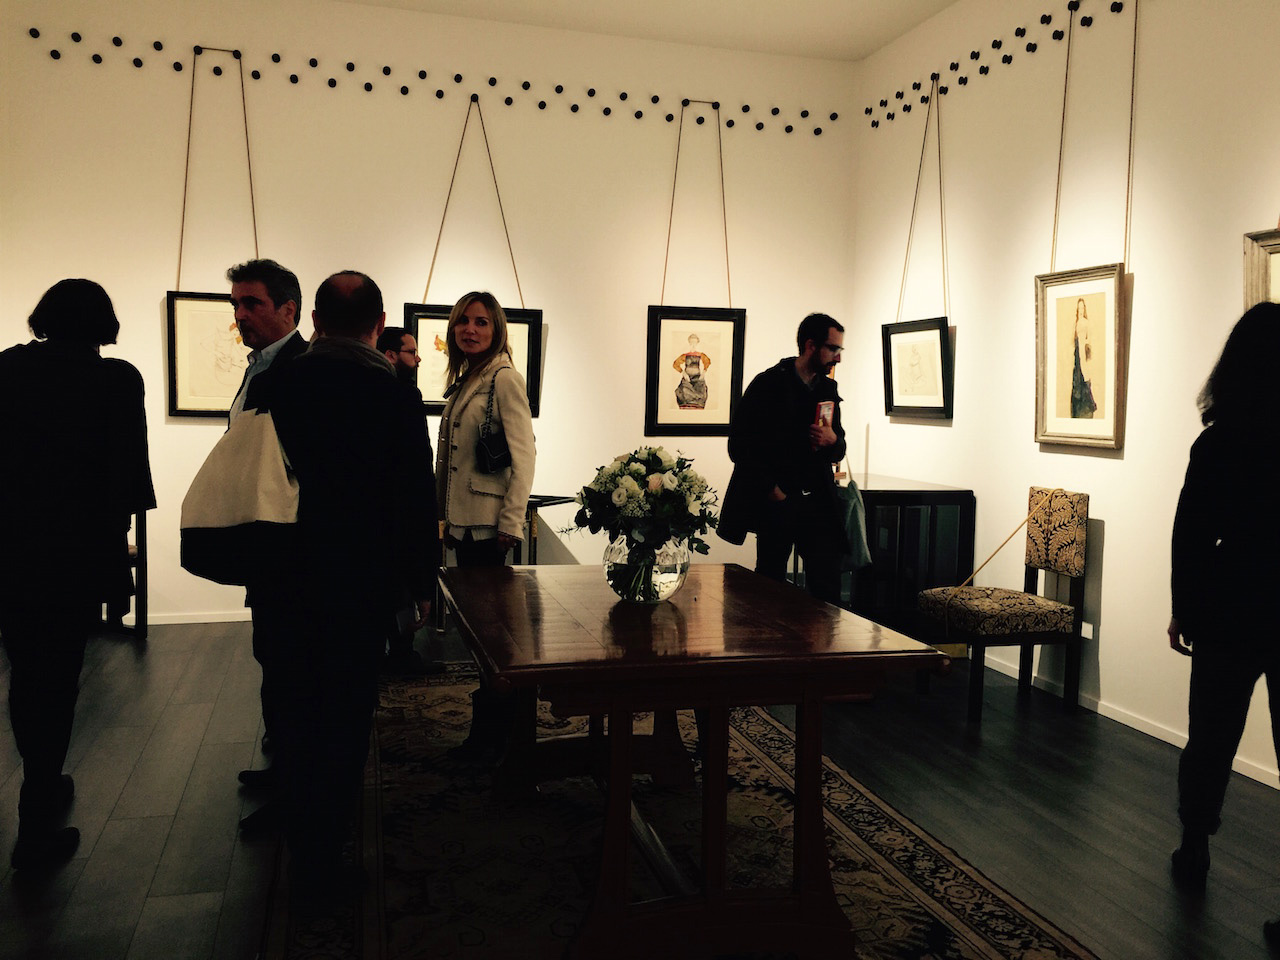 Richard Nagg's gorgeous Vienna Secession salon at Frieze Masters, with a brilliant solution for suspending pictures